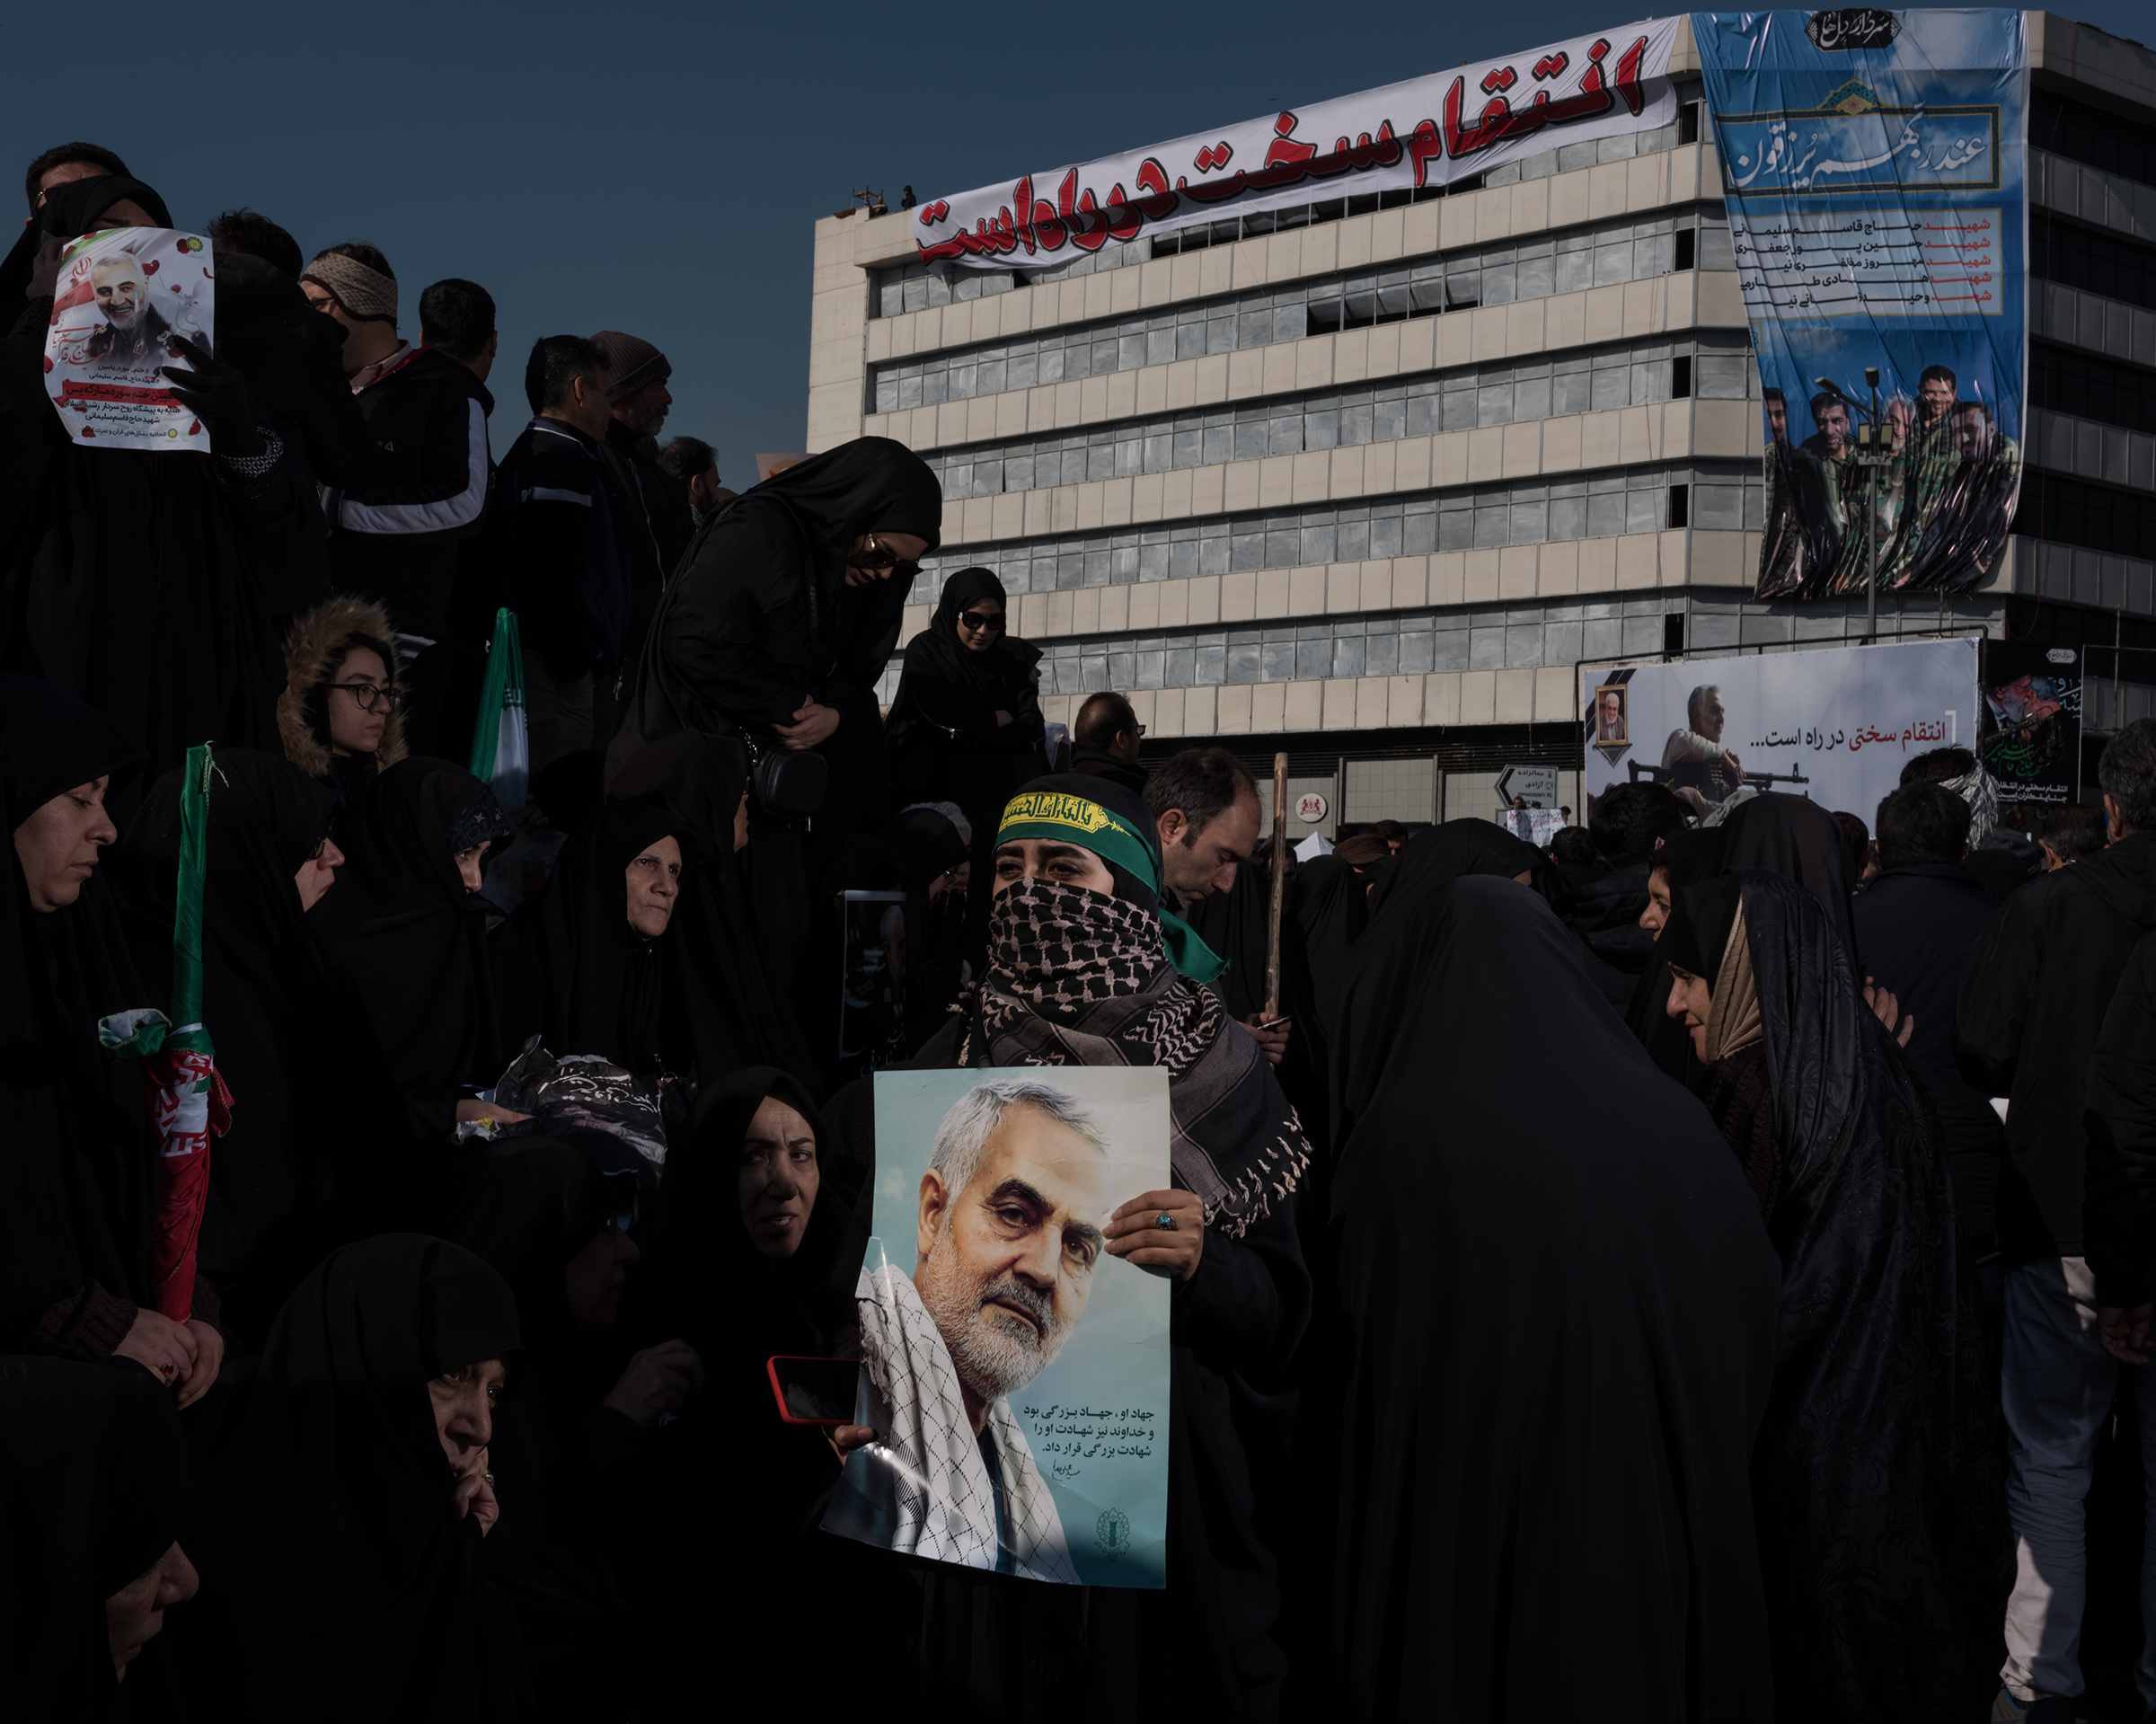 Iranians amassed in the streets of Tehran in the wake of the killing Qasem Soleimani, considered a hero by millions for leading the elite Quds Force.